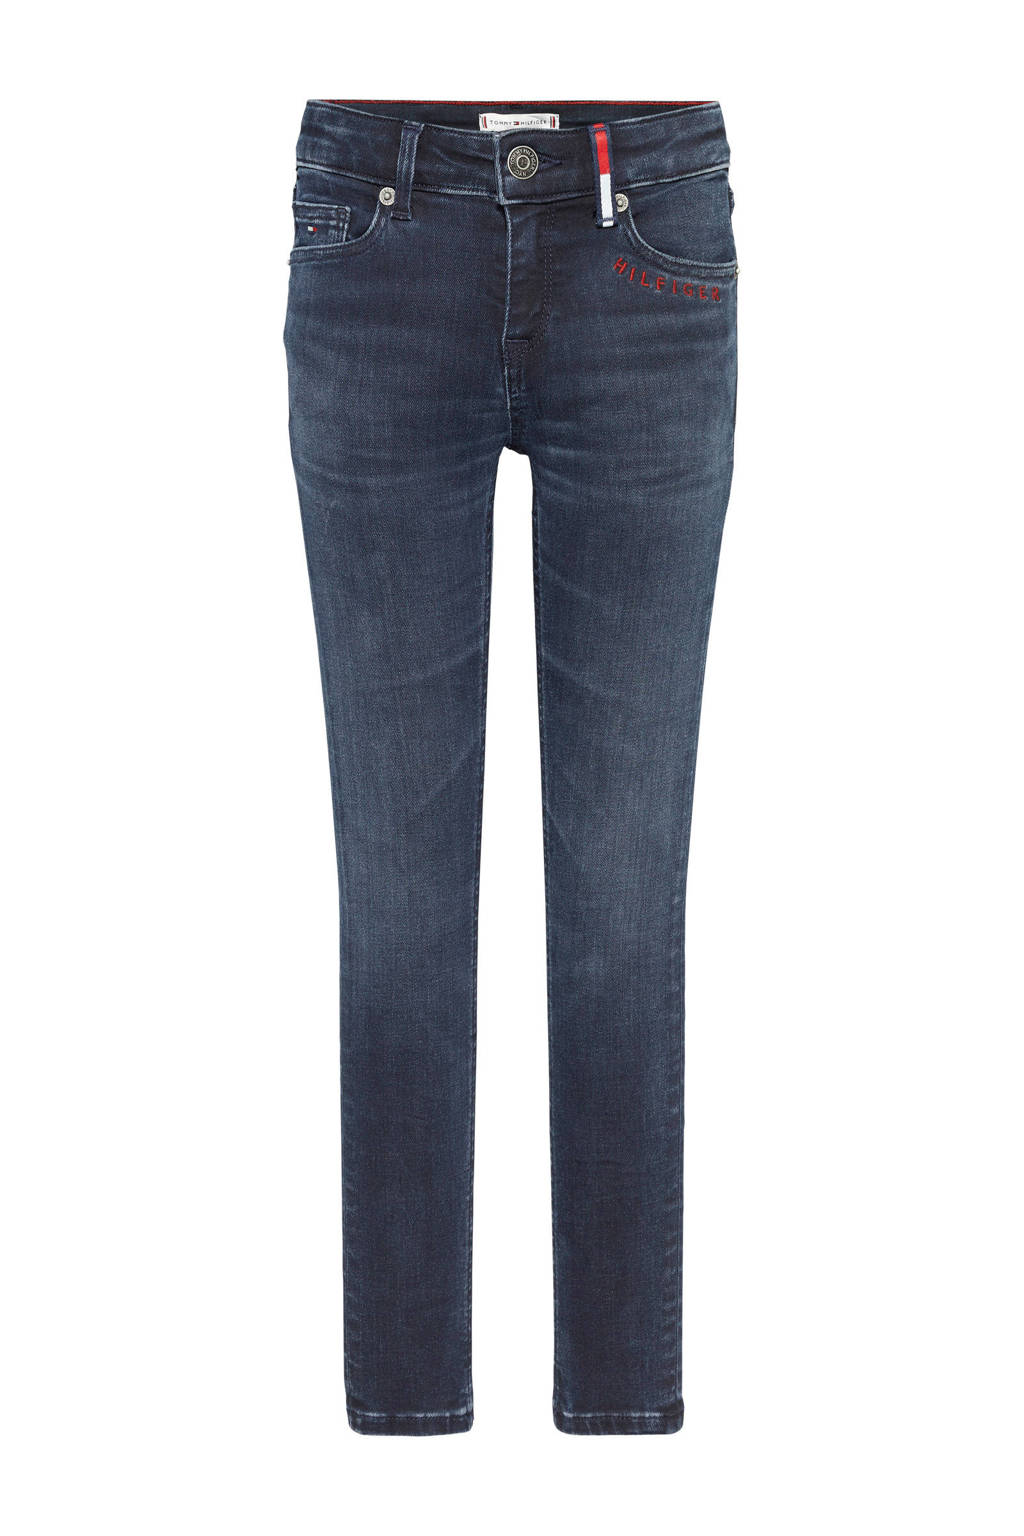 Tommy Hilfiger super skinny jeans Nora dark denim, Dark denim